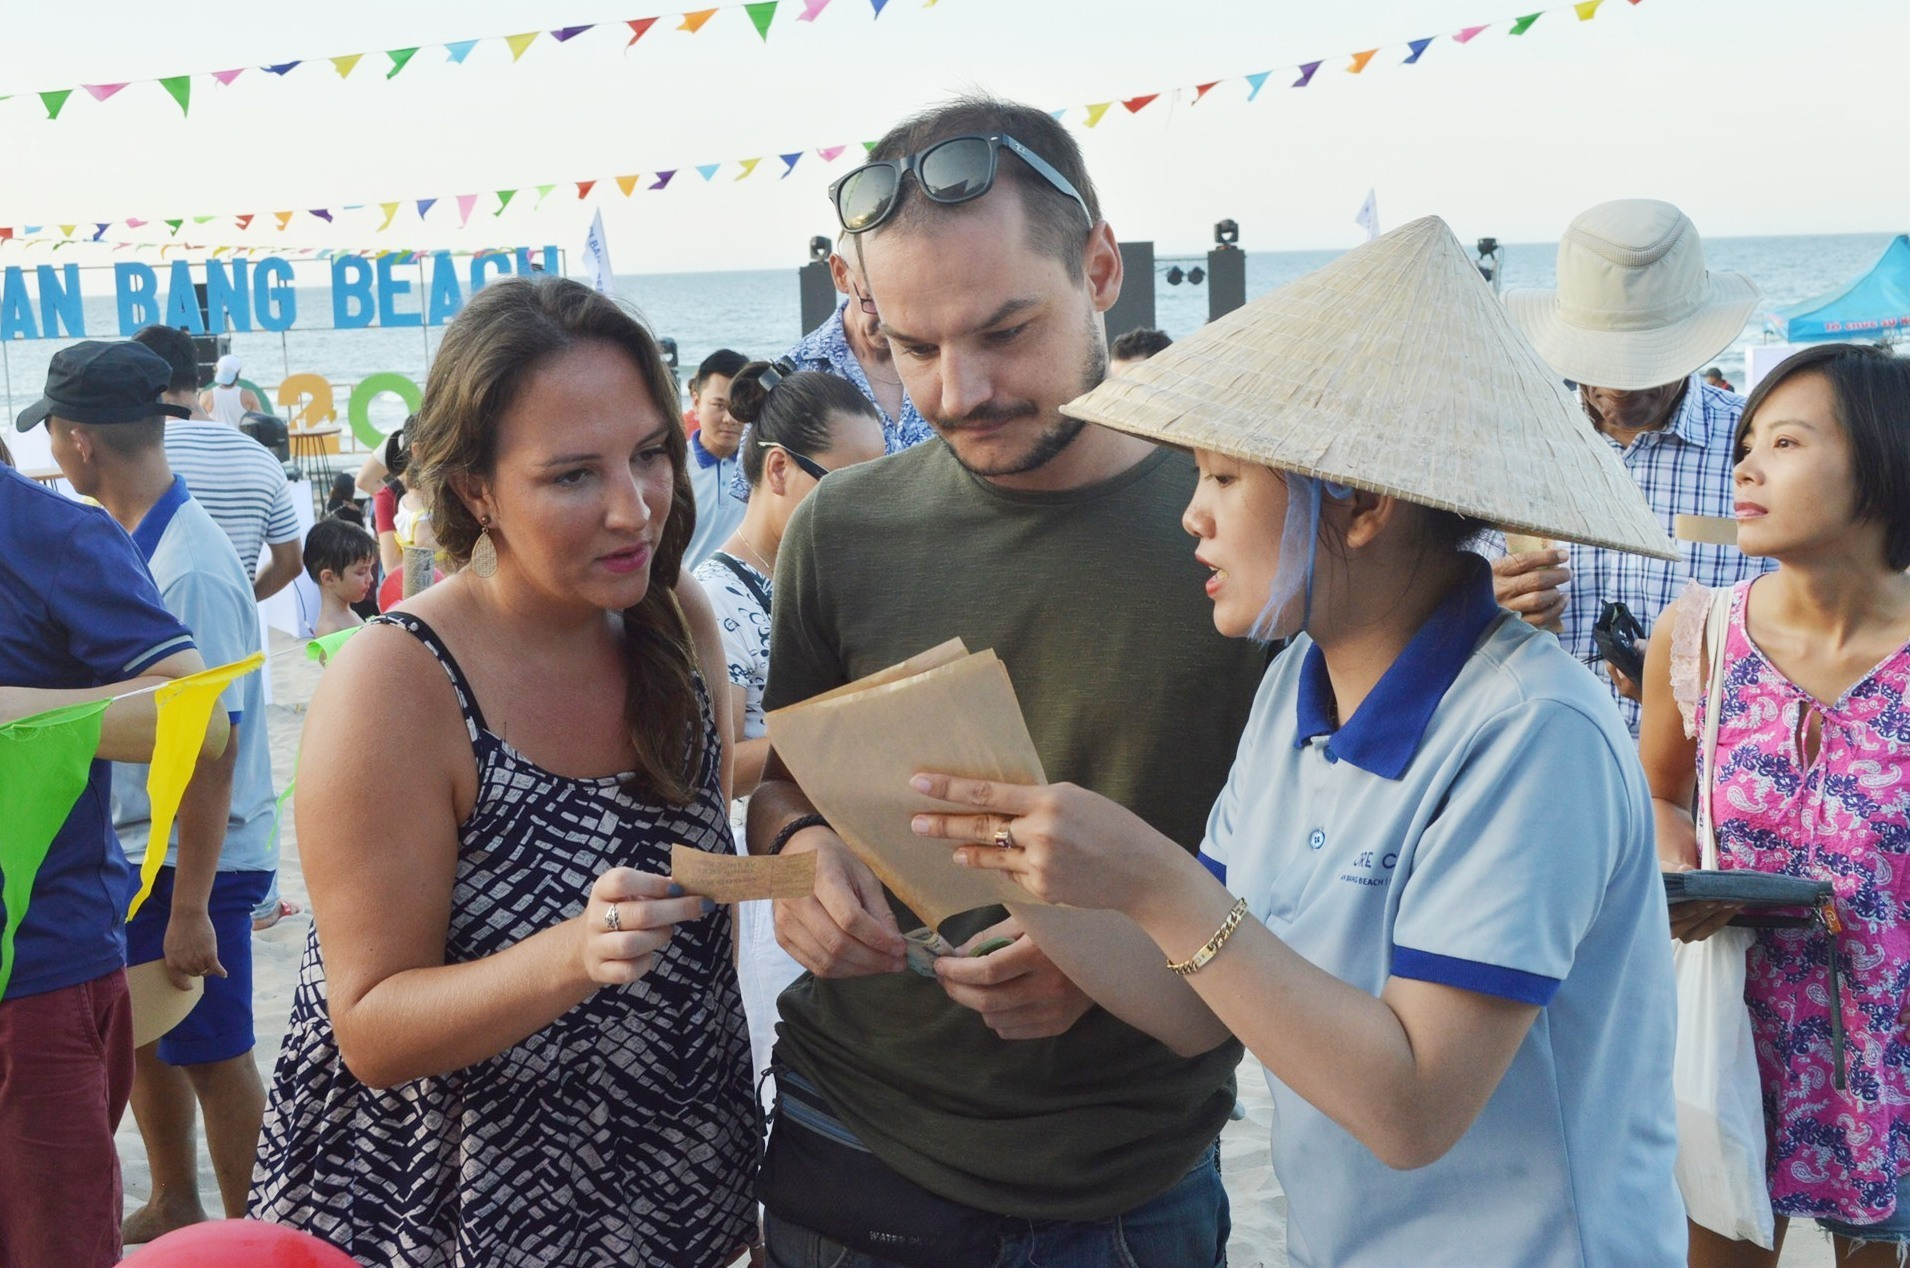 International tourists learn about specialities at the festival.